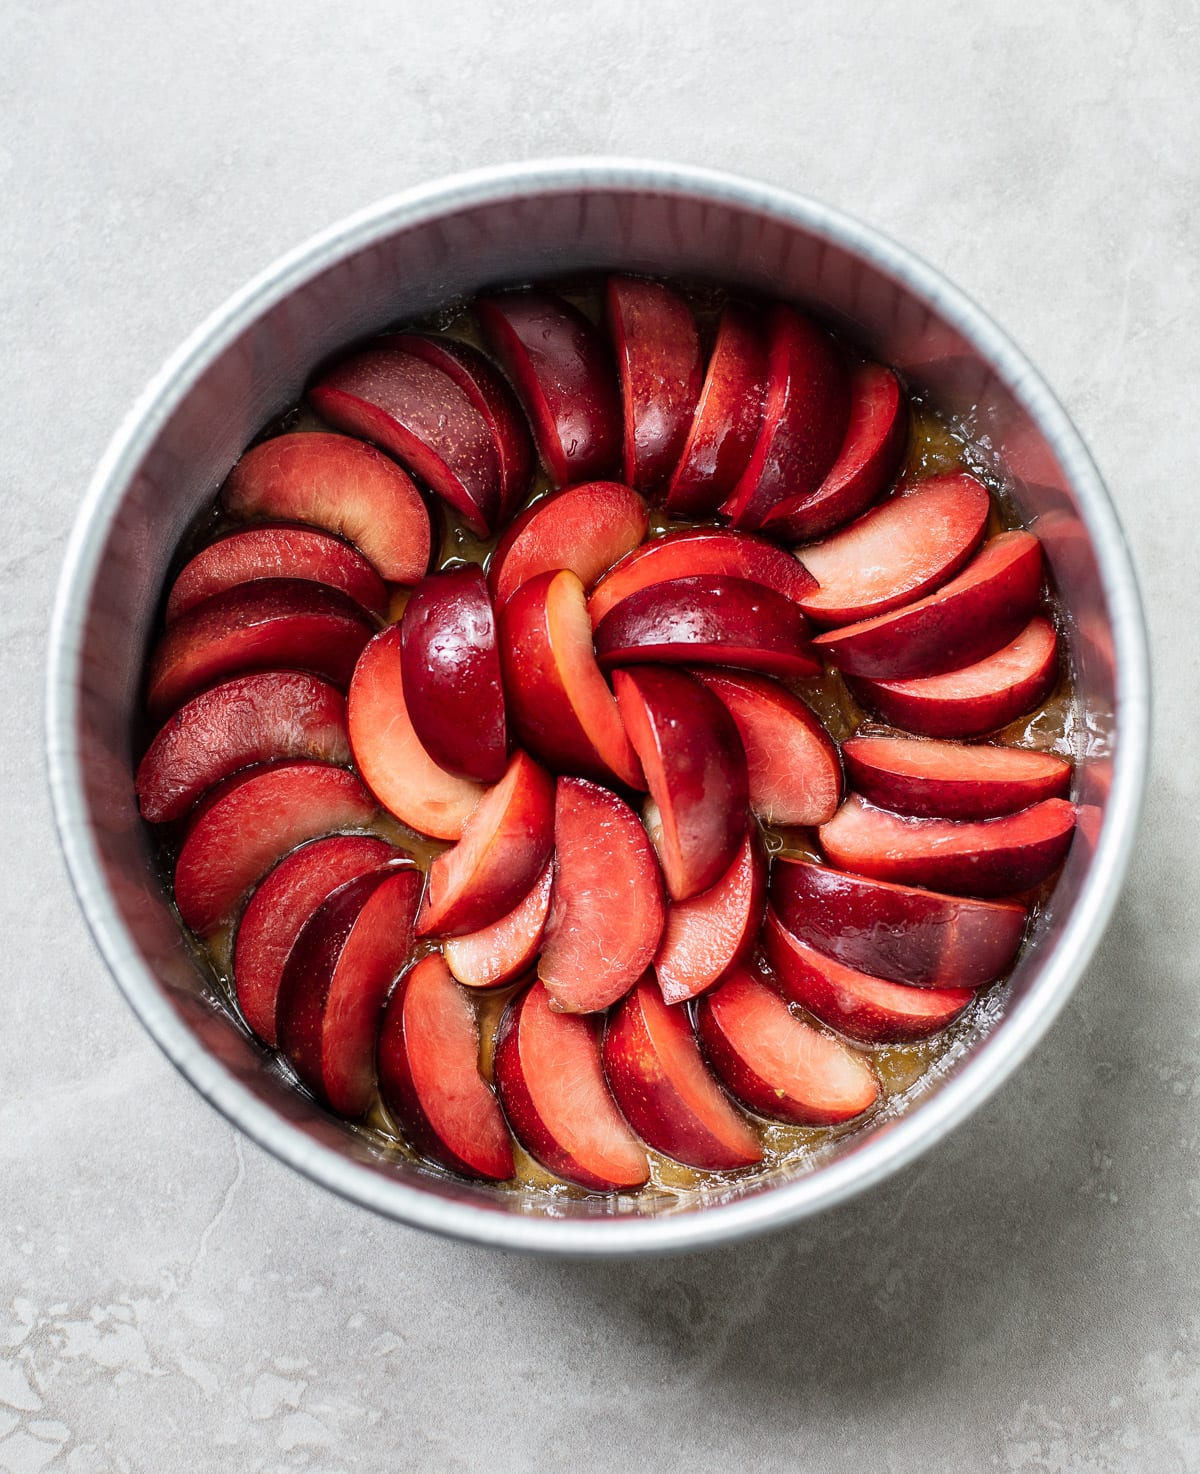 sliced plums with melted sugar arranged concentrically in a cake pan